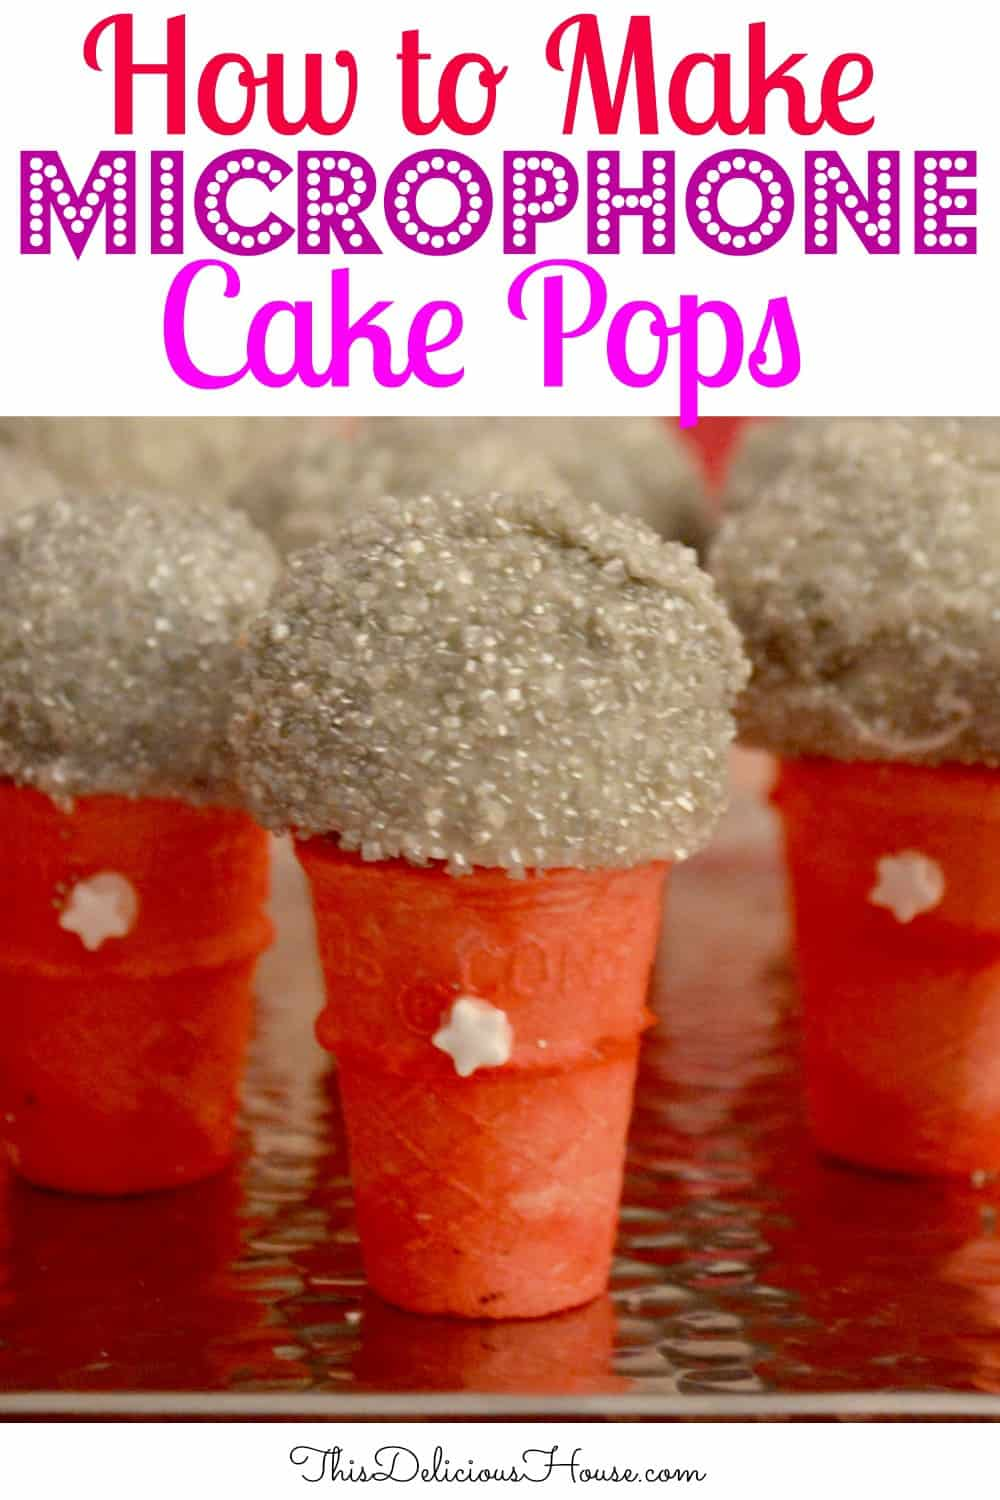 Microphone Cake Pops Pinterest pin.